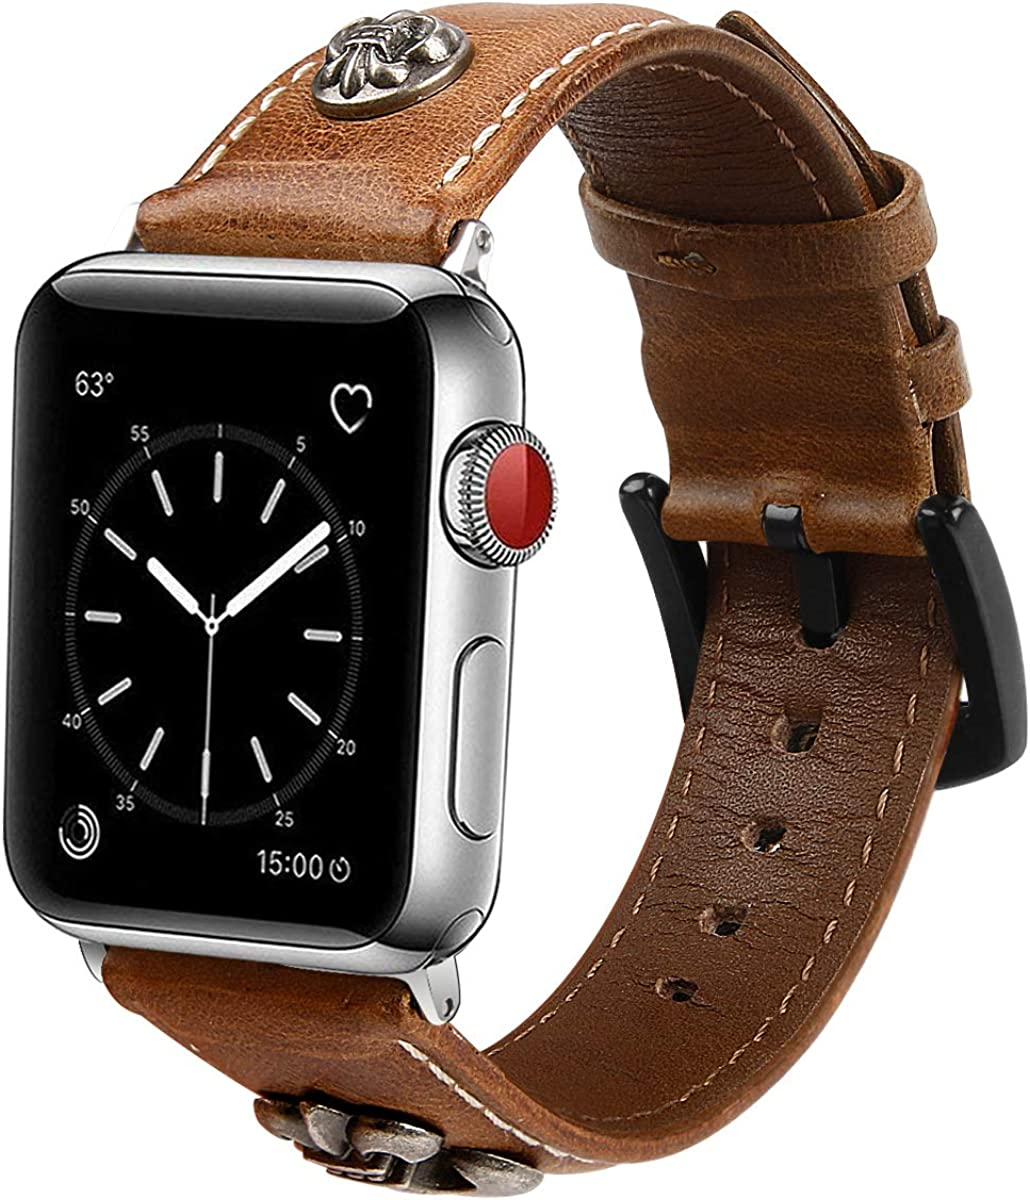 Leotop Smartwatch straps Compatible with Apple Watch Band 44mm 42mm, Genuine Leather Wrist Strap Men Women Retro Bracelet Replacement with Metal Buckle Compatible iwatch Series 5/4/3/2/1 (Brown)